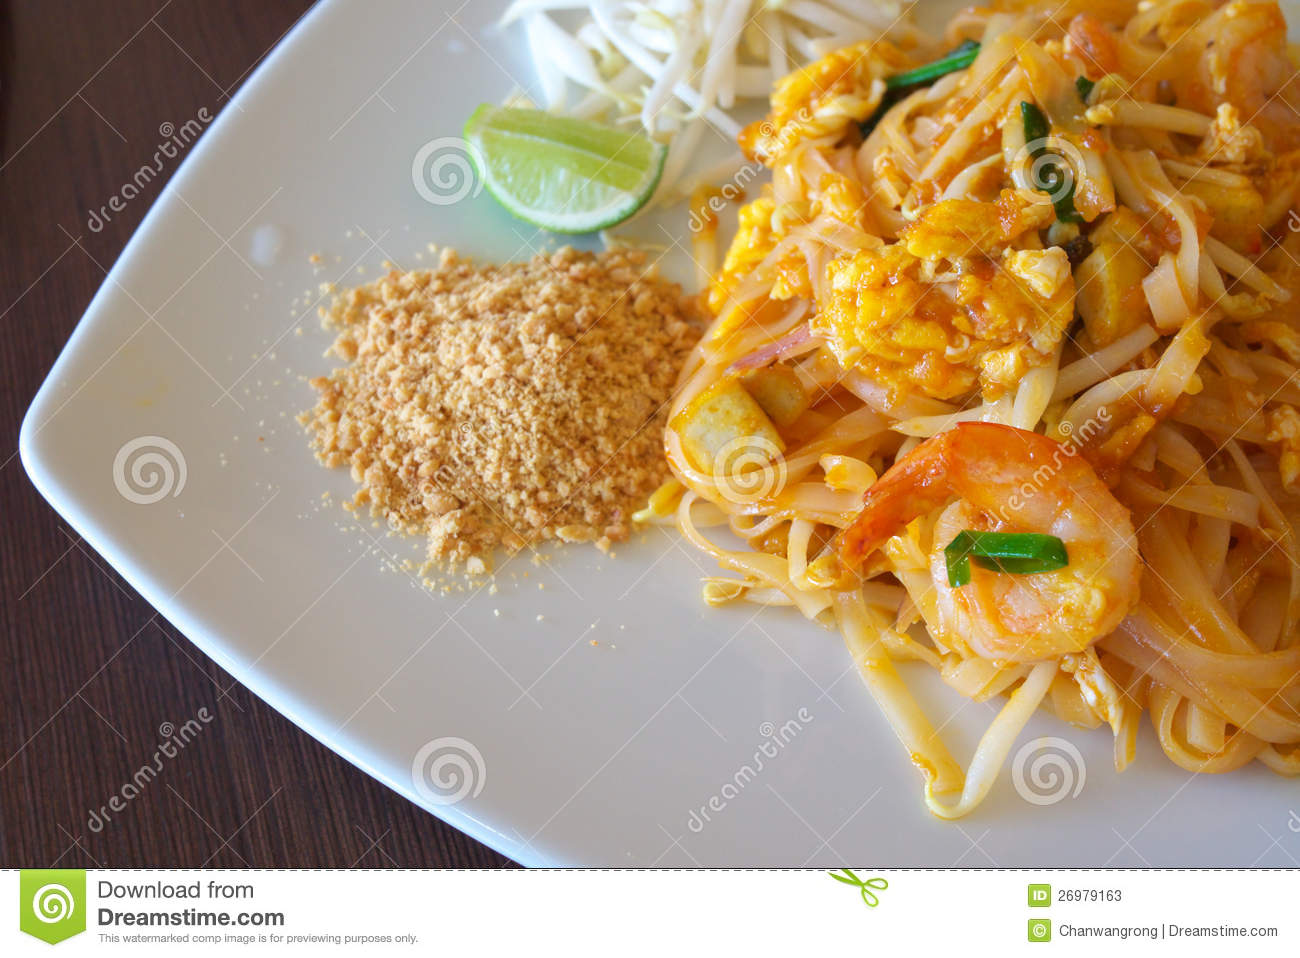 Stir-fried Rice Noodle With Shrimp Stock Photos - Image: 26979163